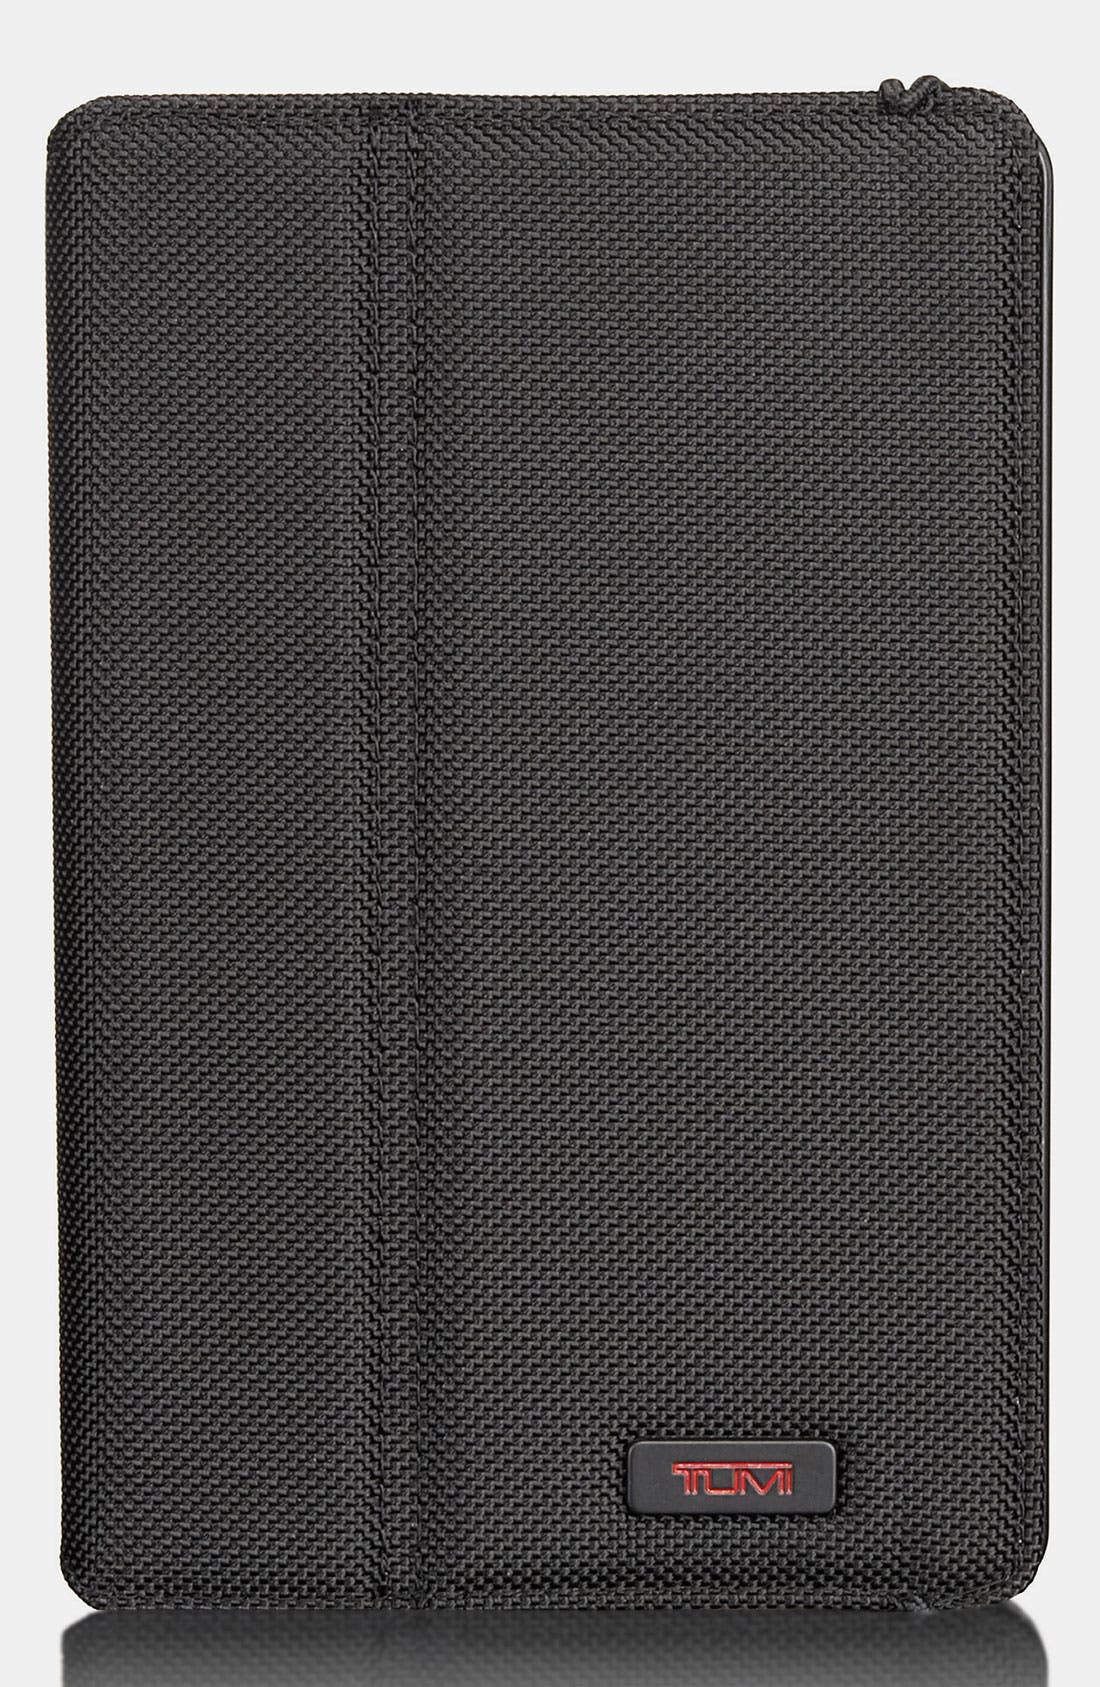 Alternate Image 1 Selected - Tumi Ballistic Kindle Fire Case